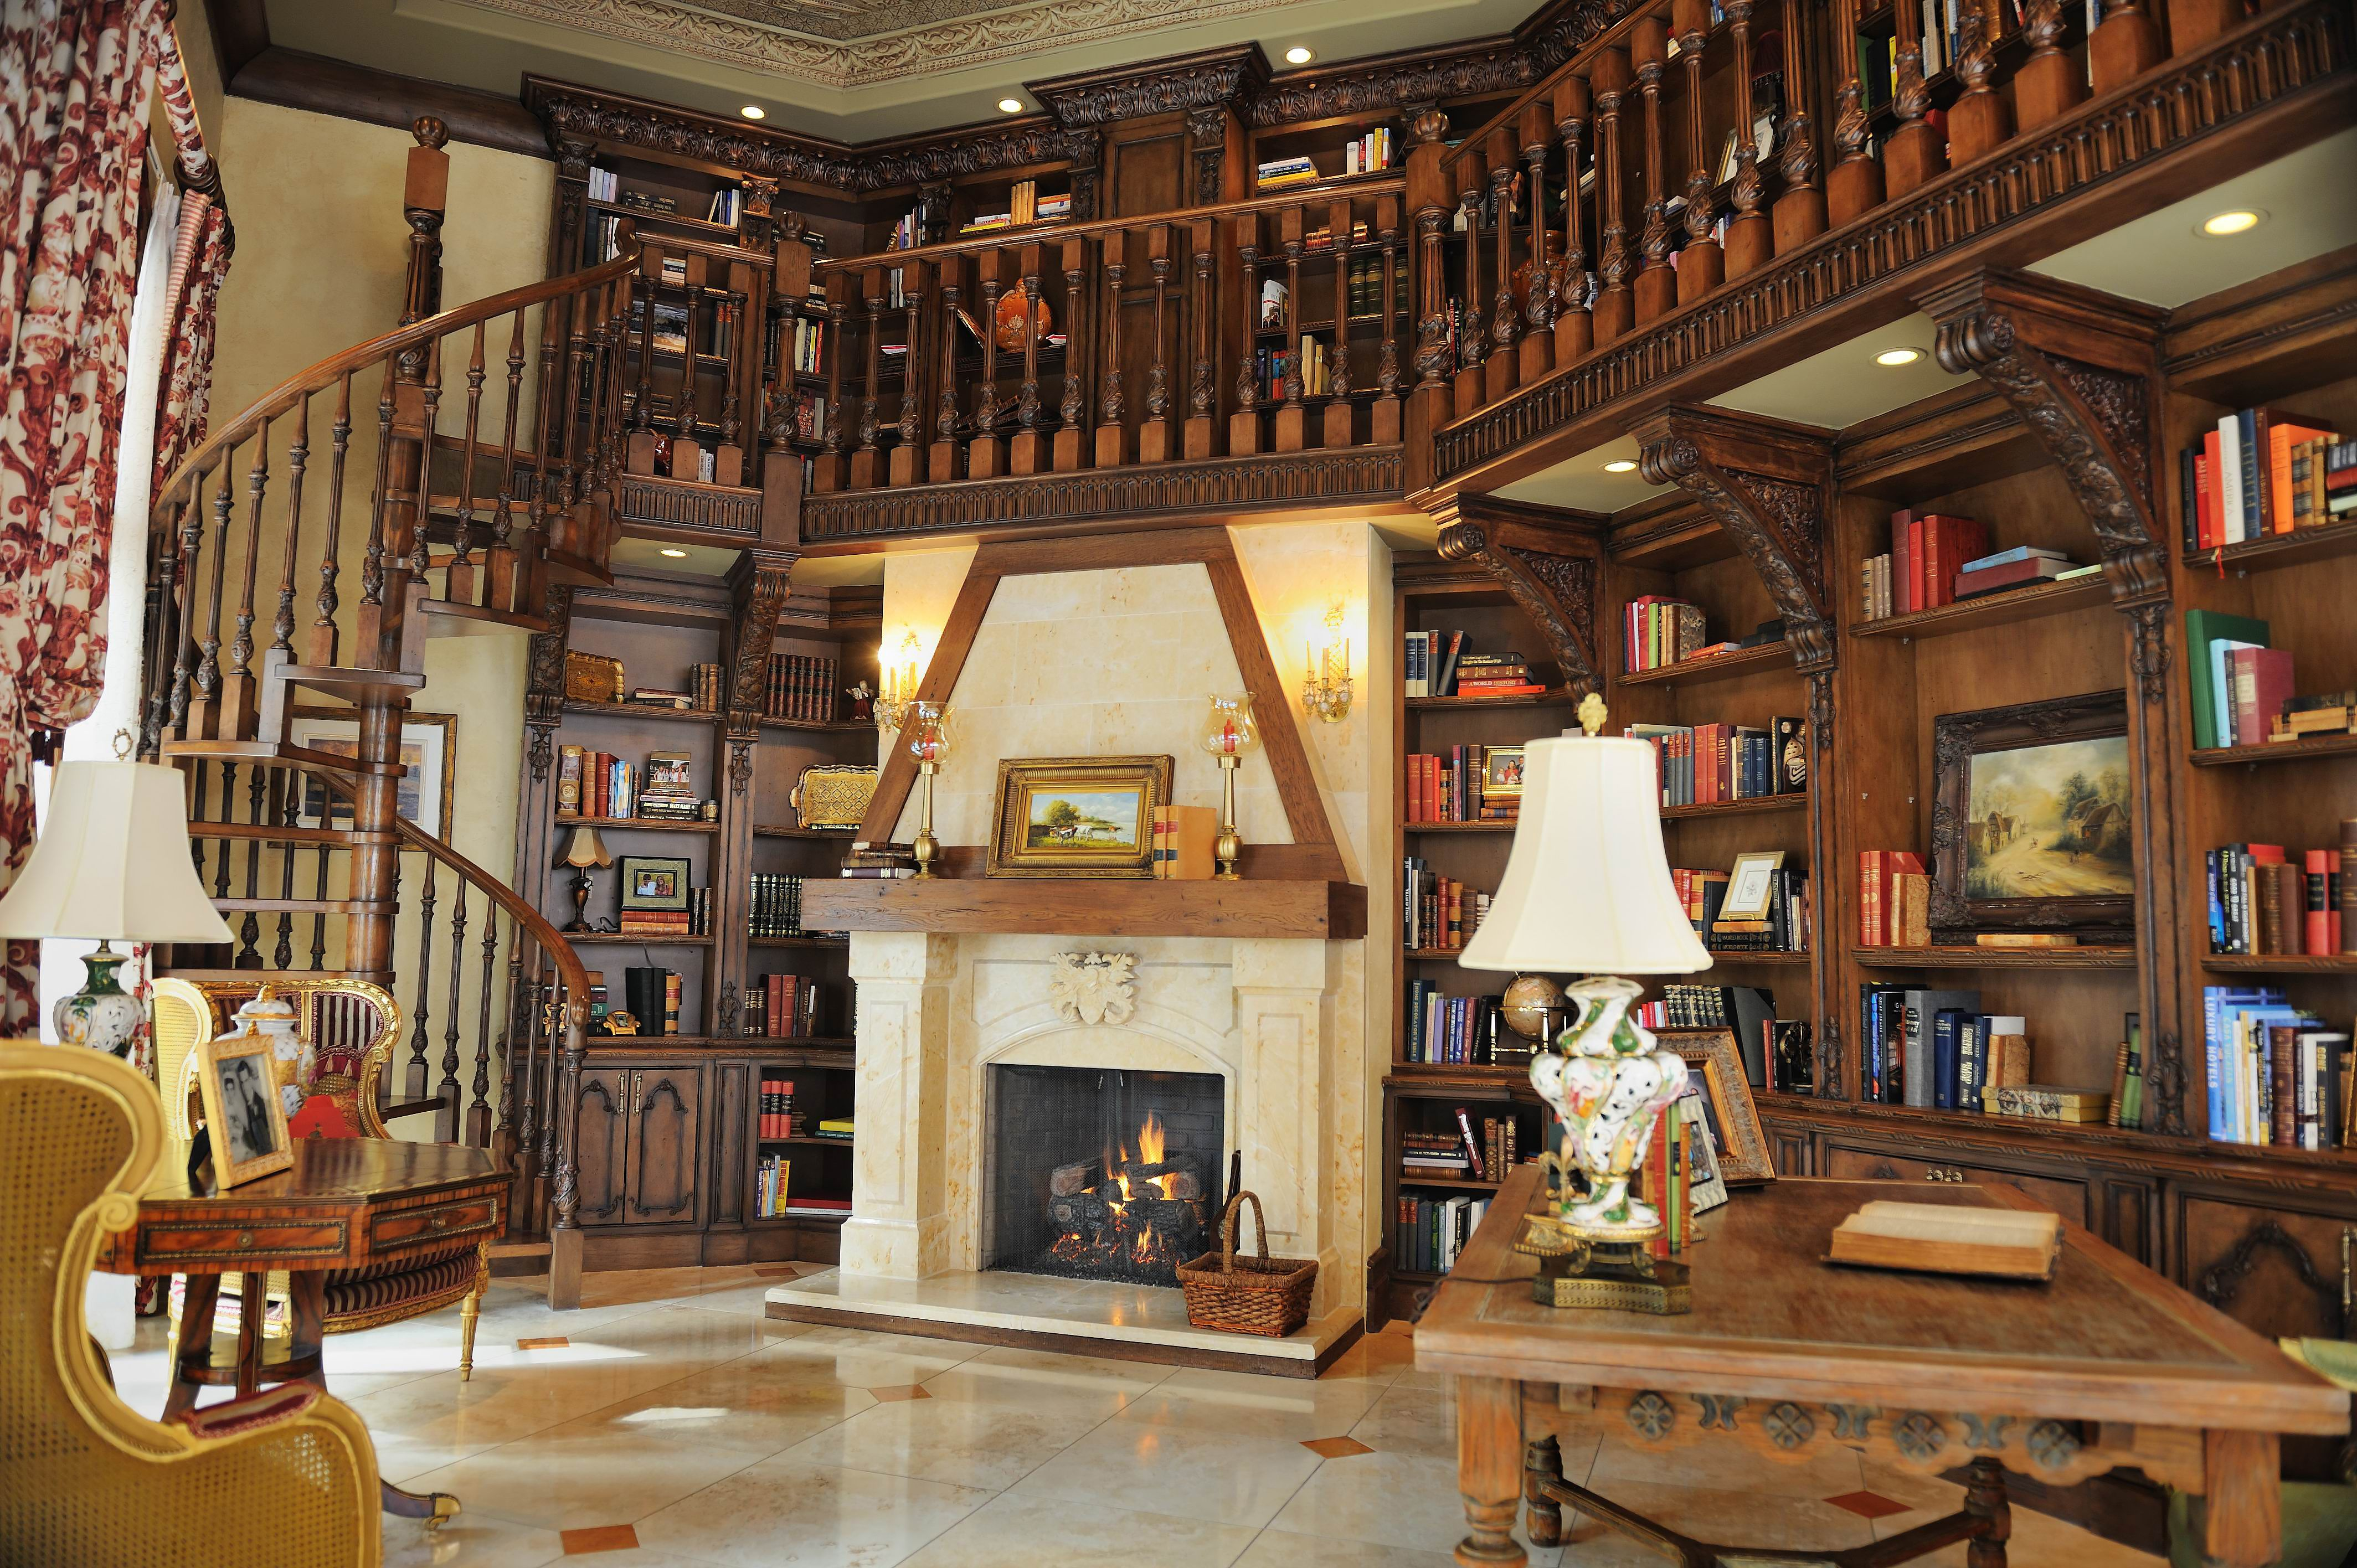 Pin by Gonobobel on Interior_Cosy library | Home library design ...